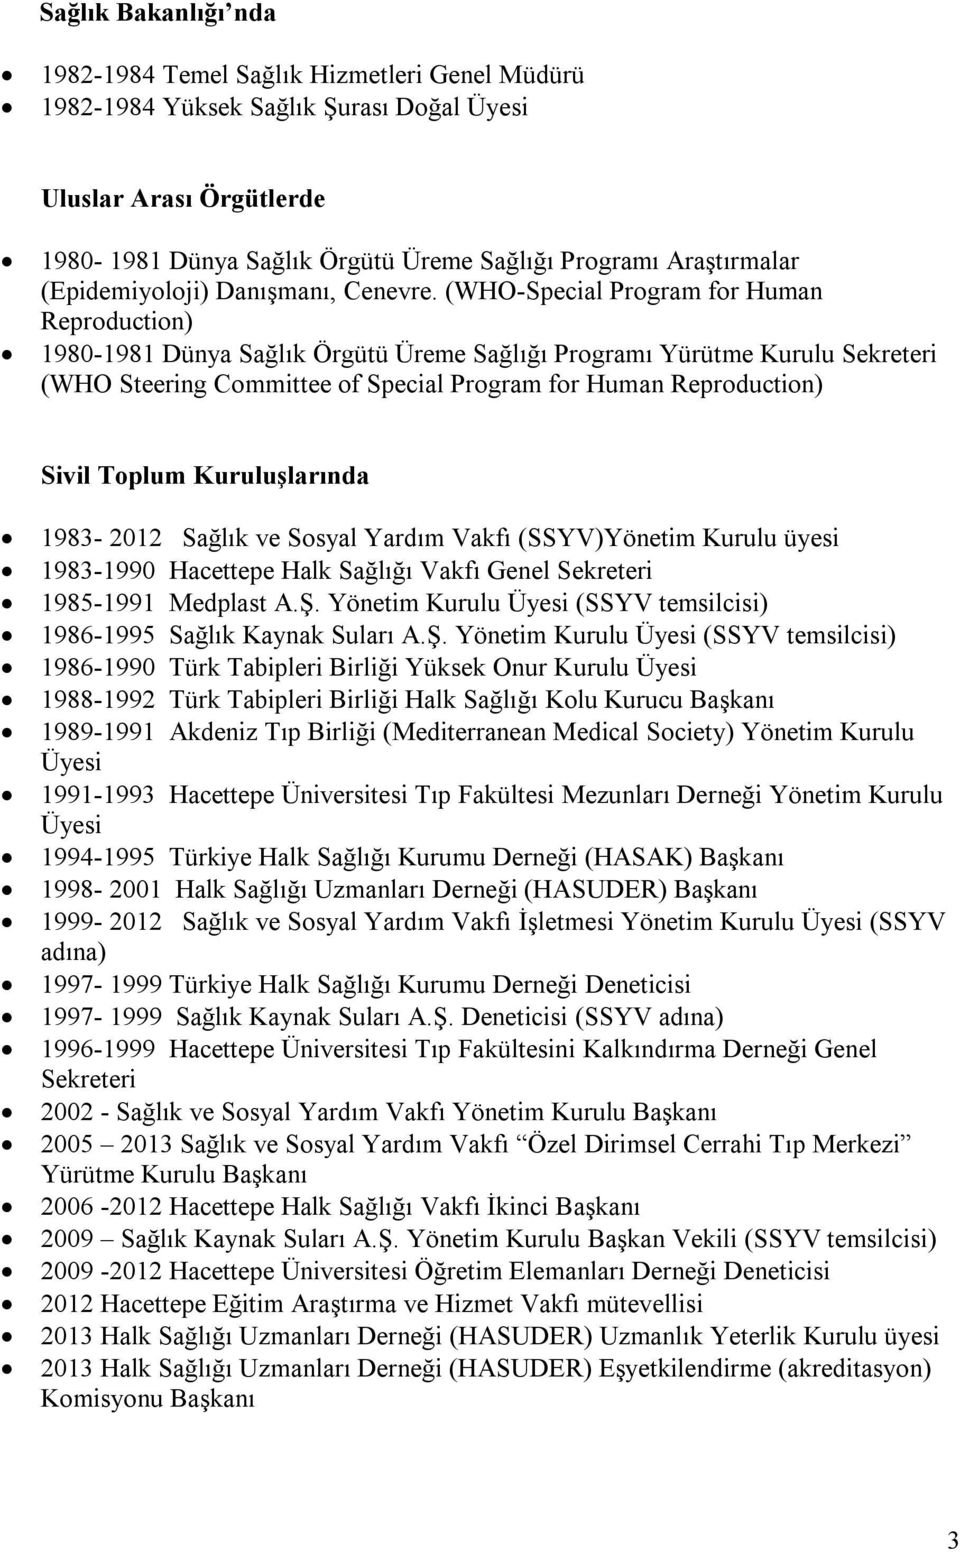 (WHO-Special Program for Human Reproduction) 1980-1981 Dünya Sağlık Örgütü Üreme Sağlığı Programı Yürütme Kurulu Sekreteri (WHO Steering Committee of Special Program for Human Reproduction) Sivil